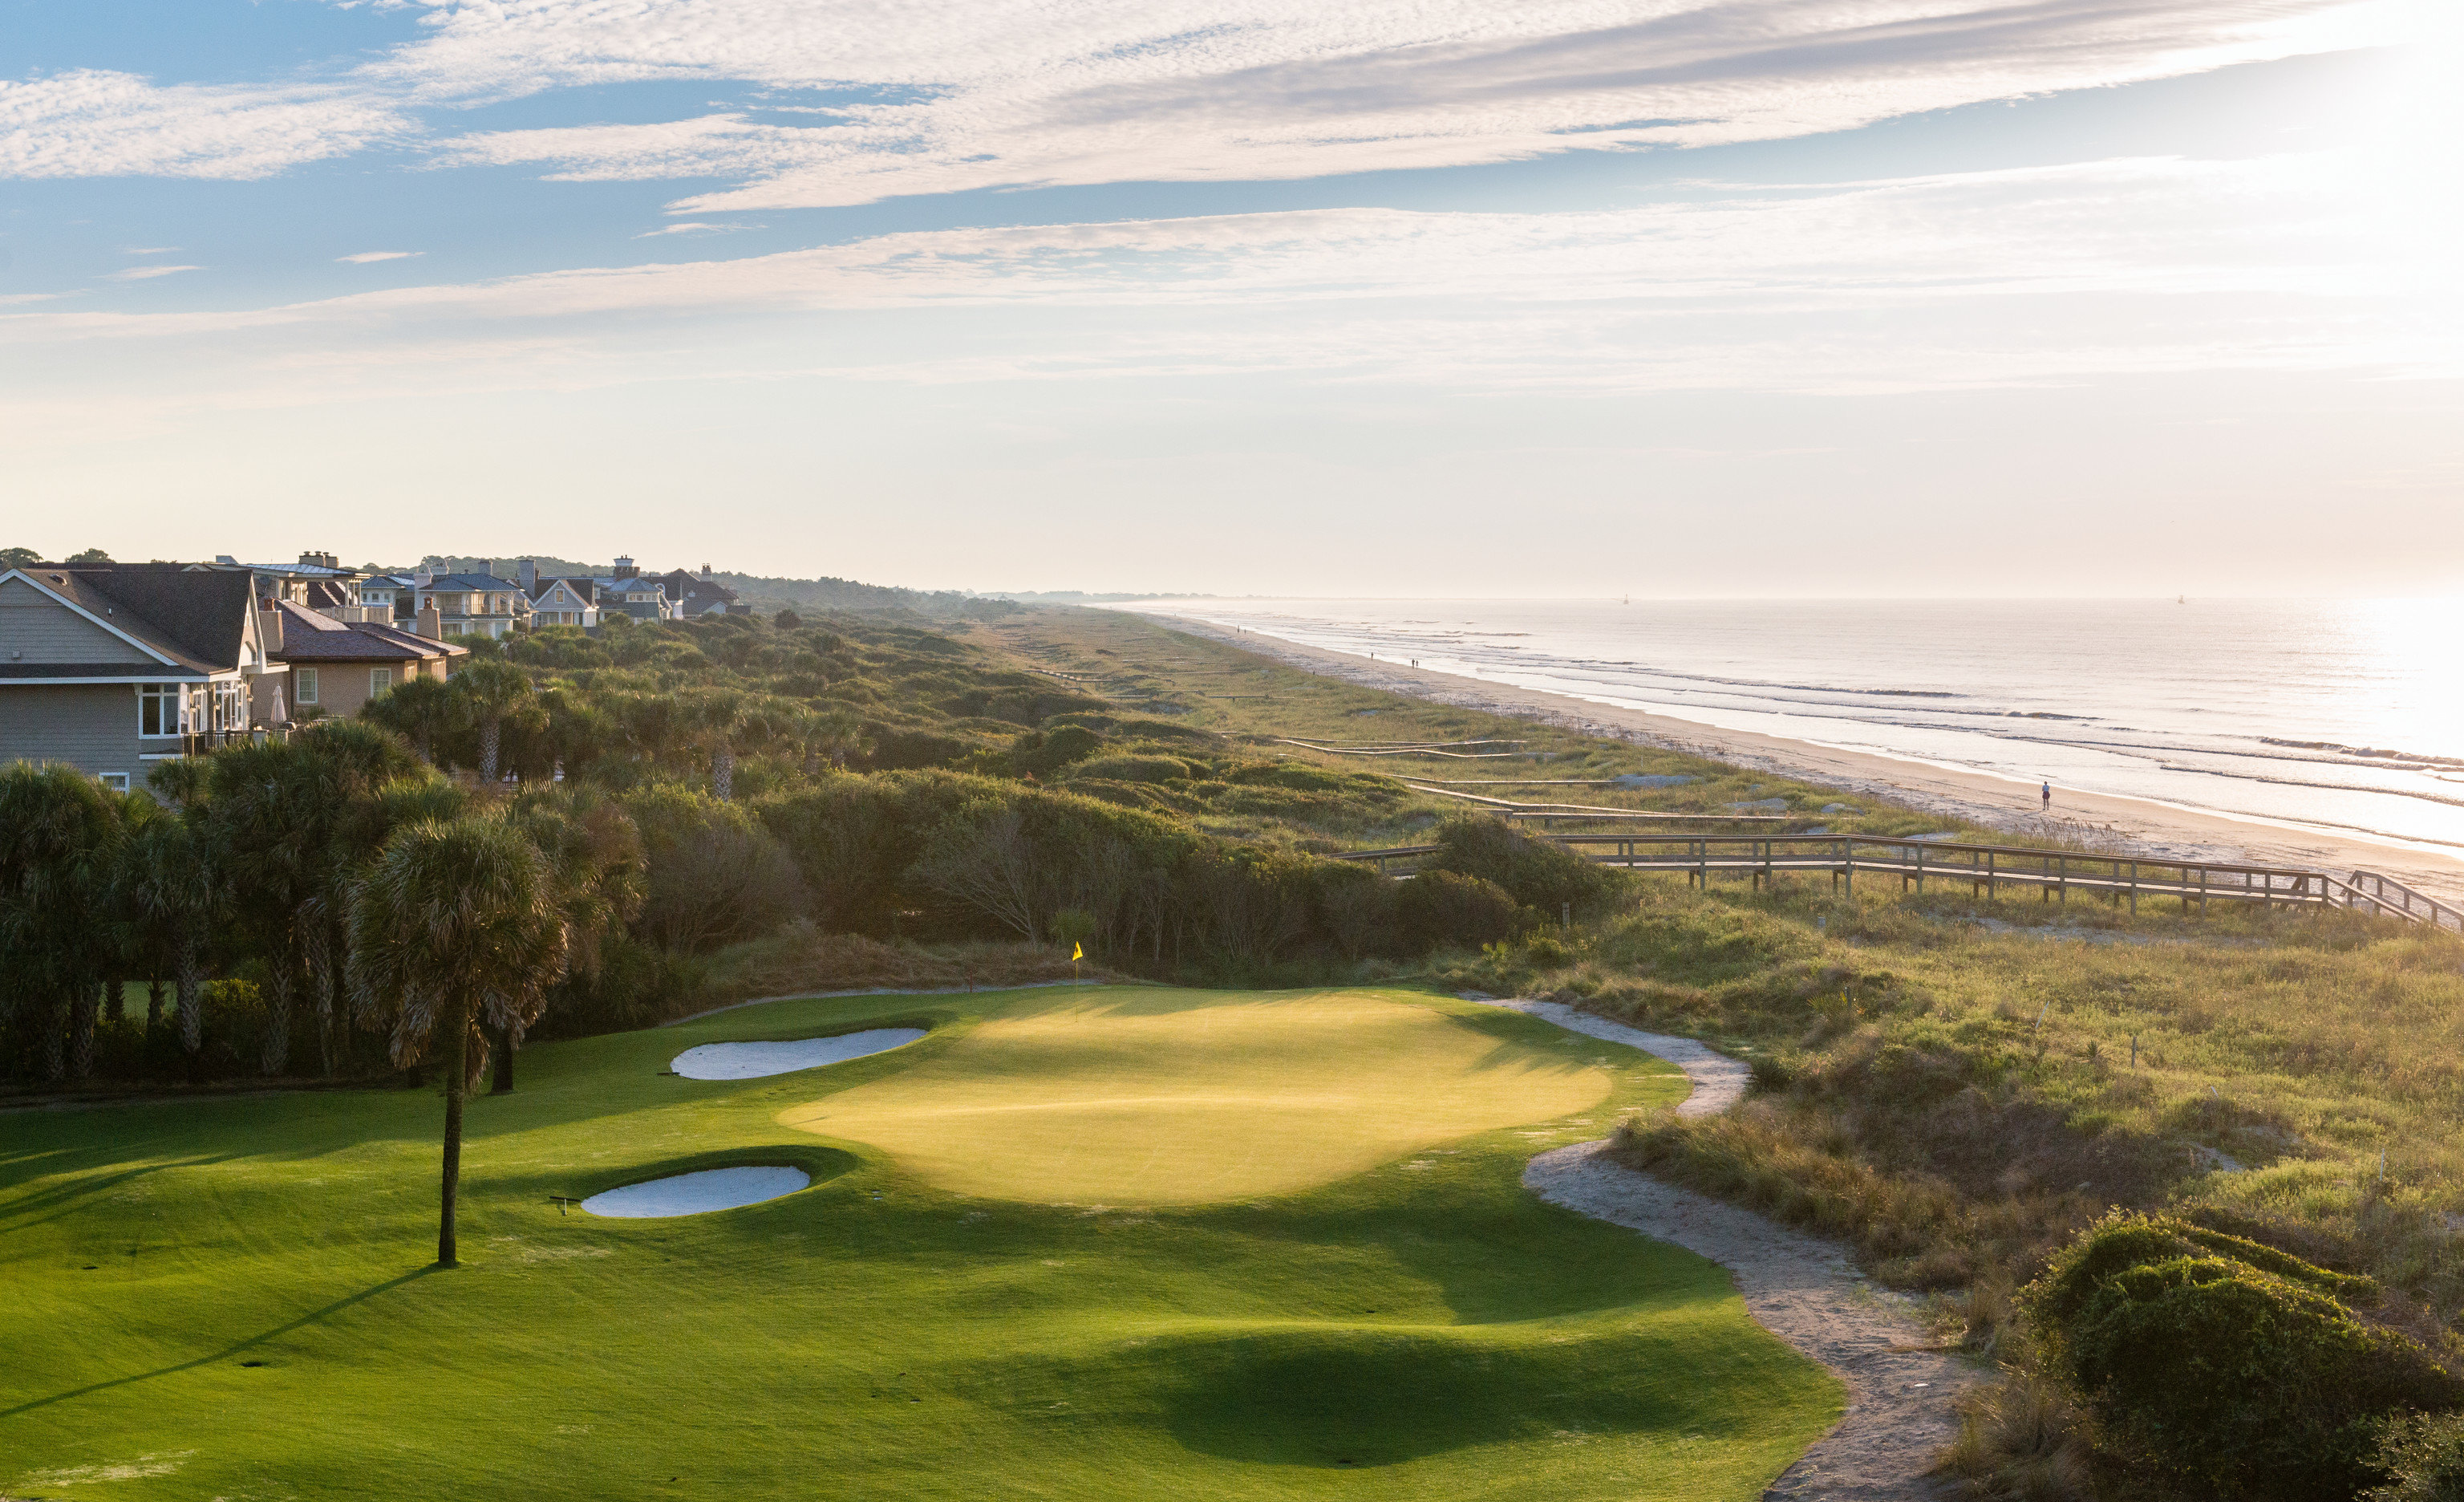 Beach East Coast USA Trip Ideas grass outdoor sky structure sport venue Nature Coast golf course sports Sea golf club grassy lush overlooking hillside